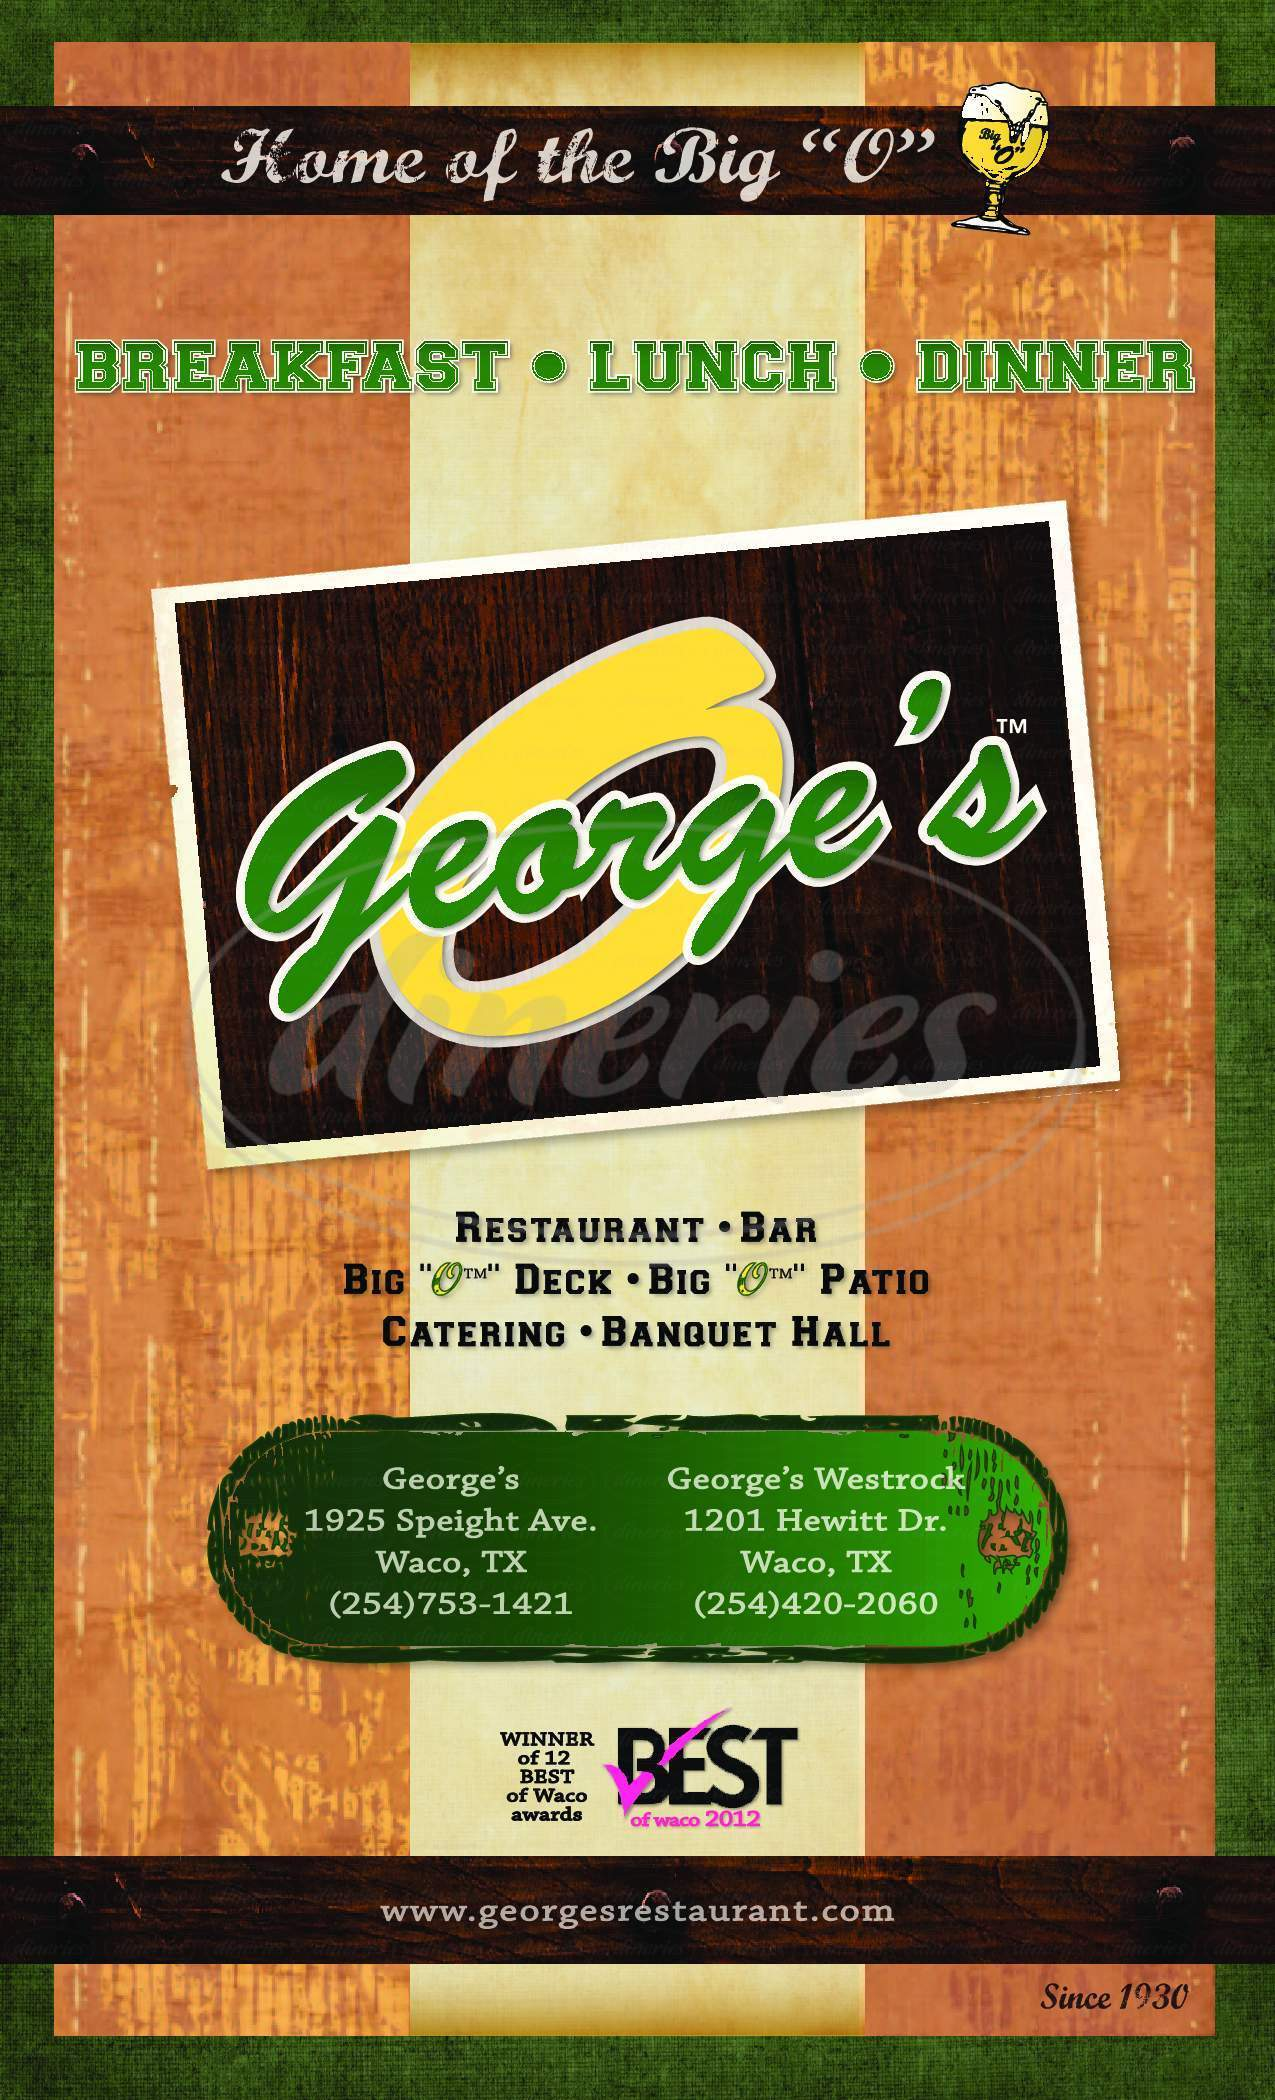 menu for George's Restaurant and Catering